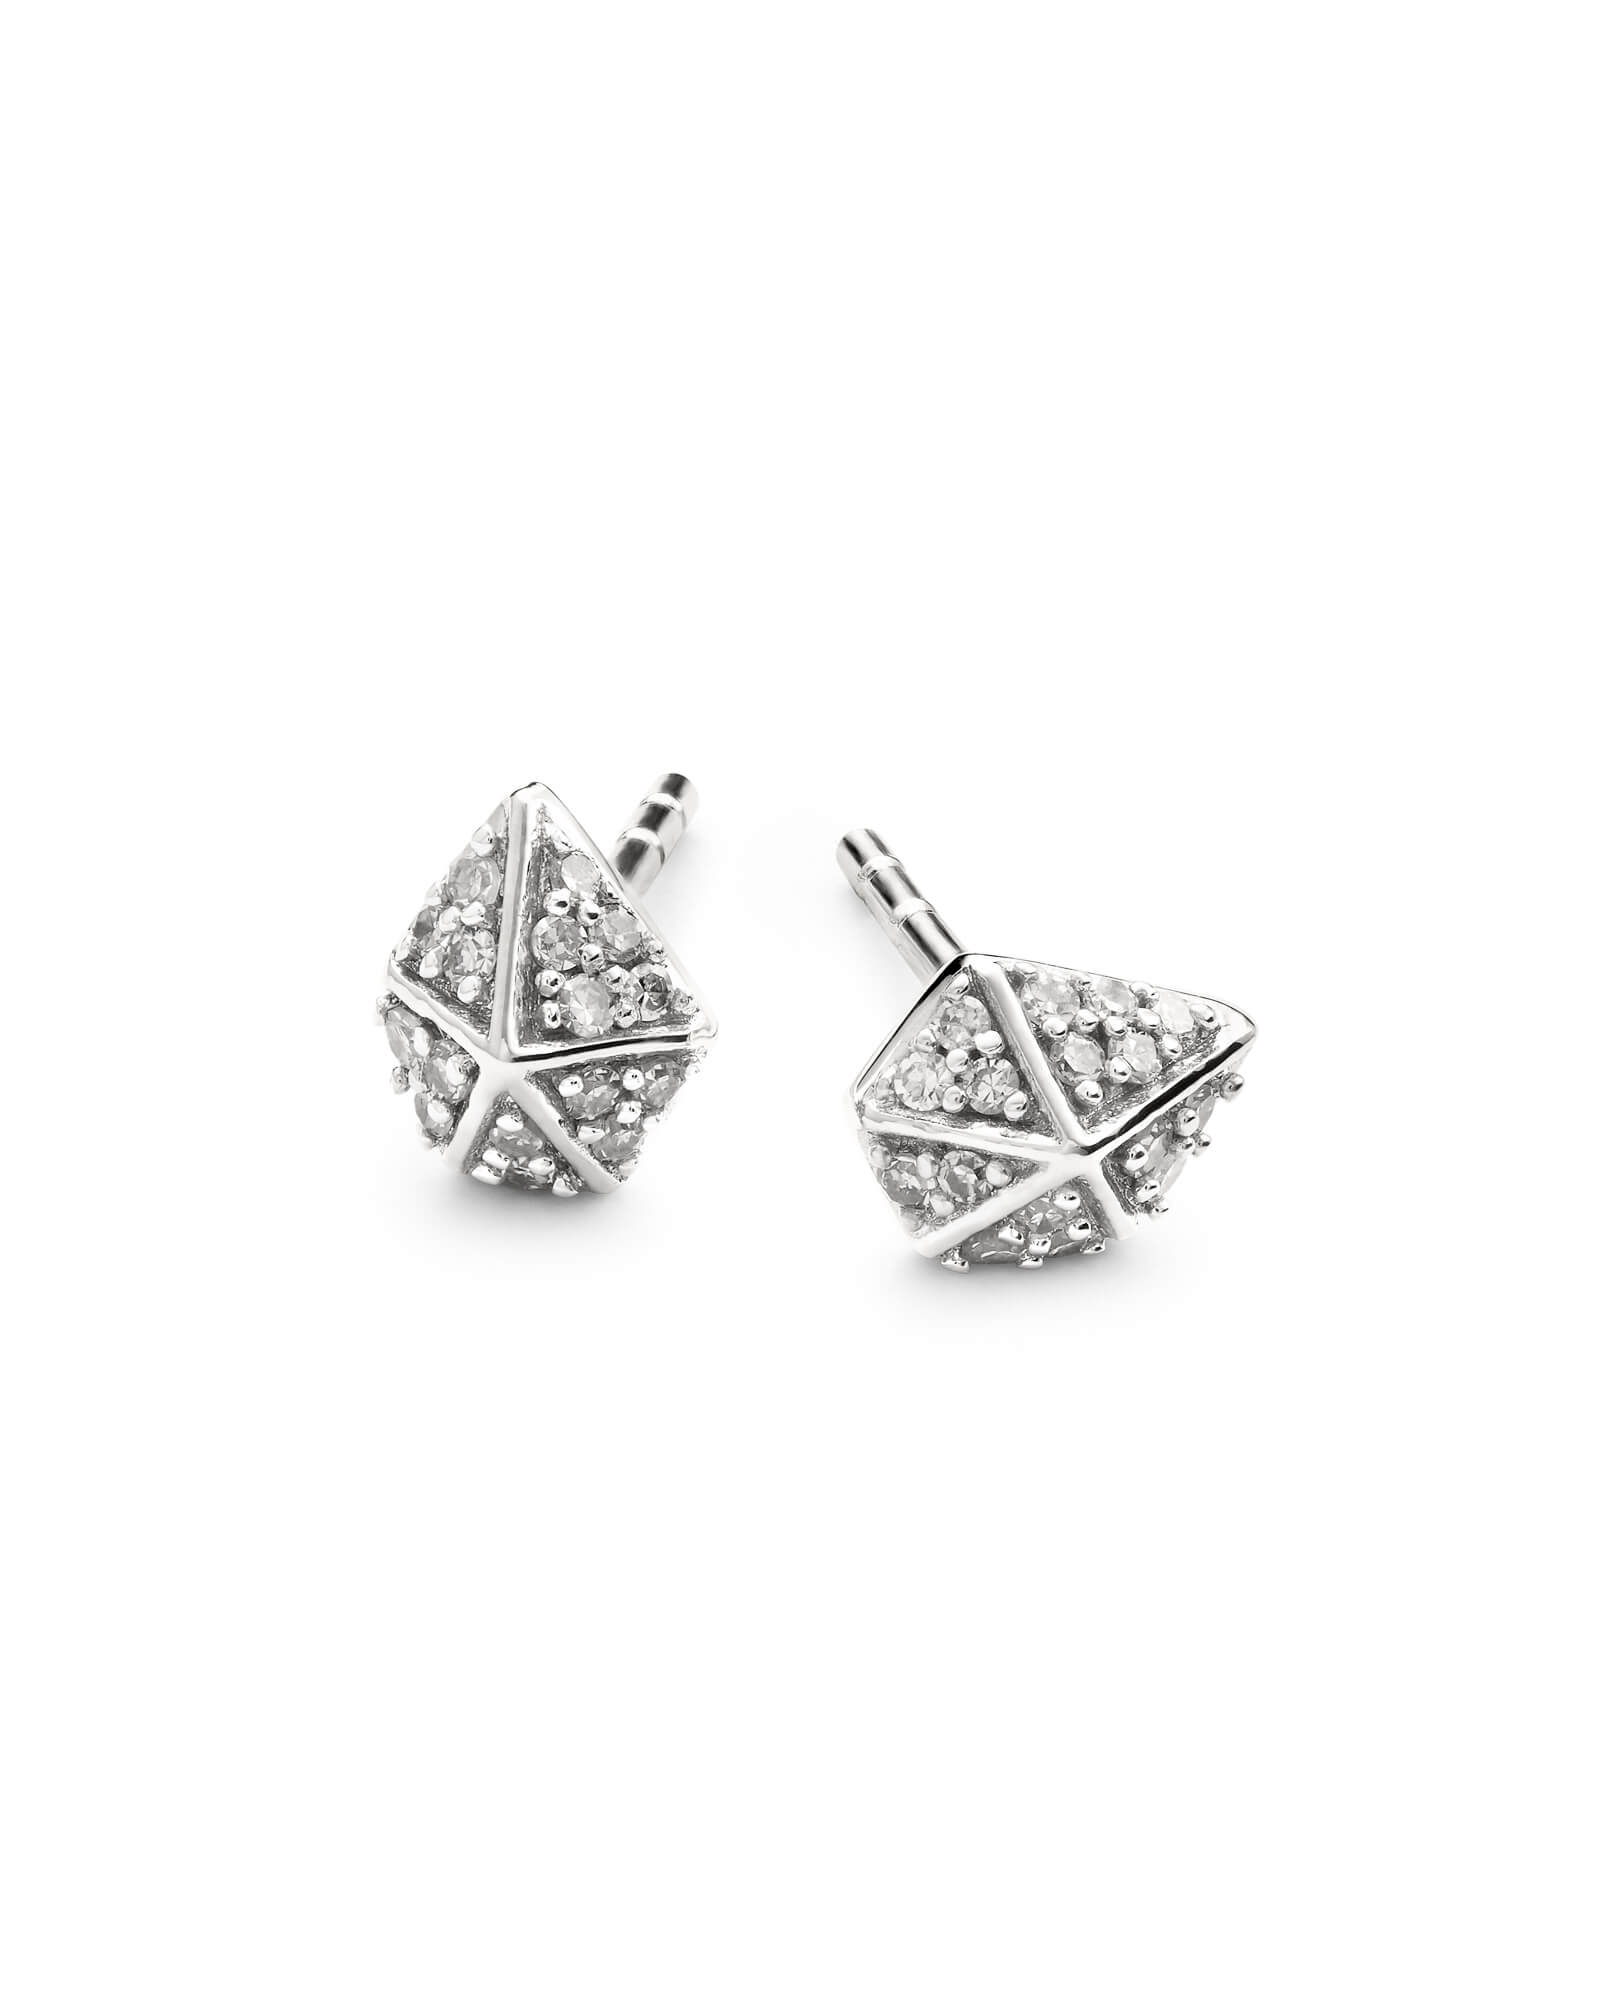 Manet 14k White Gold Stud Earrings in White Diamond